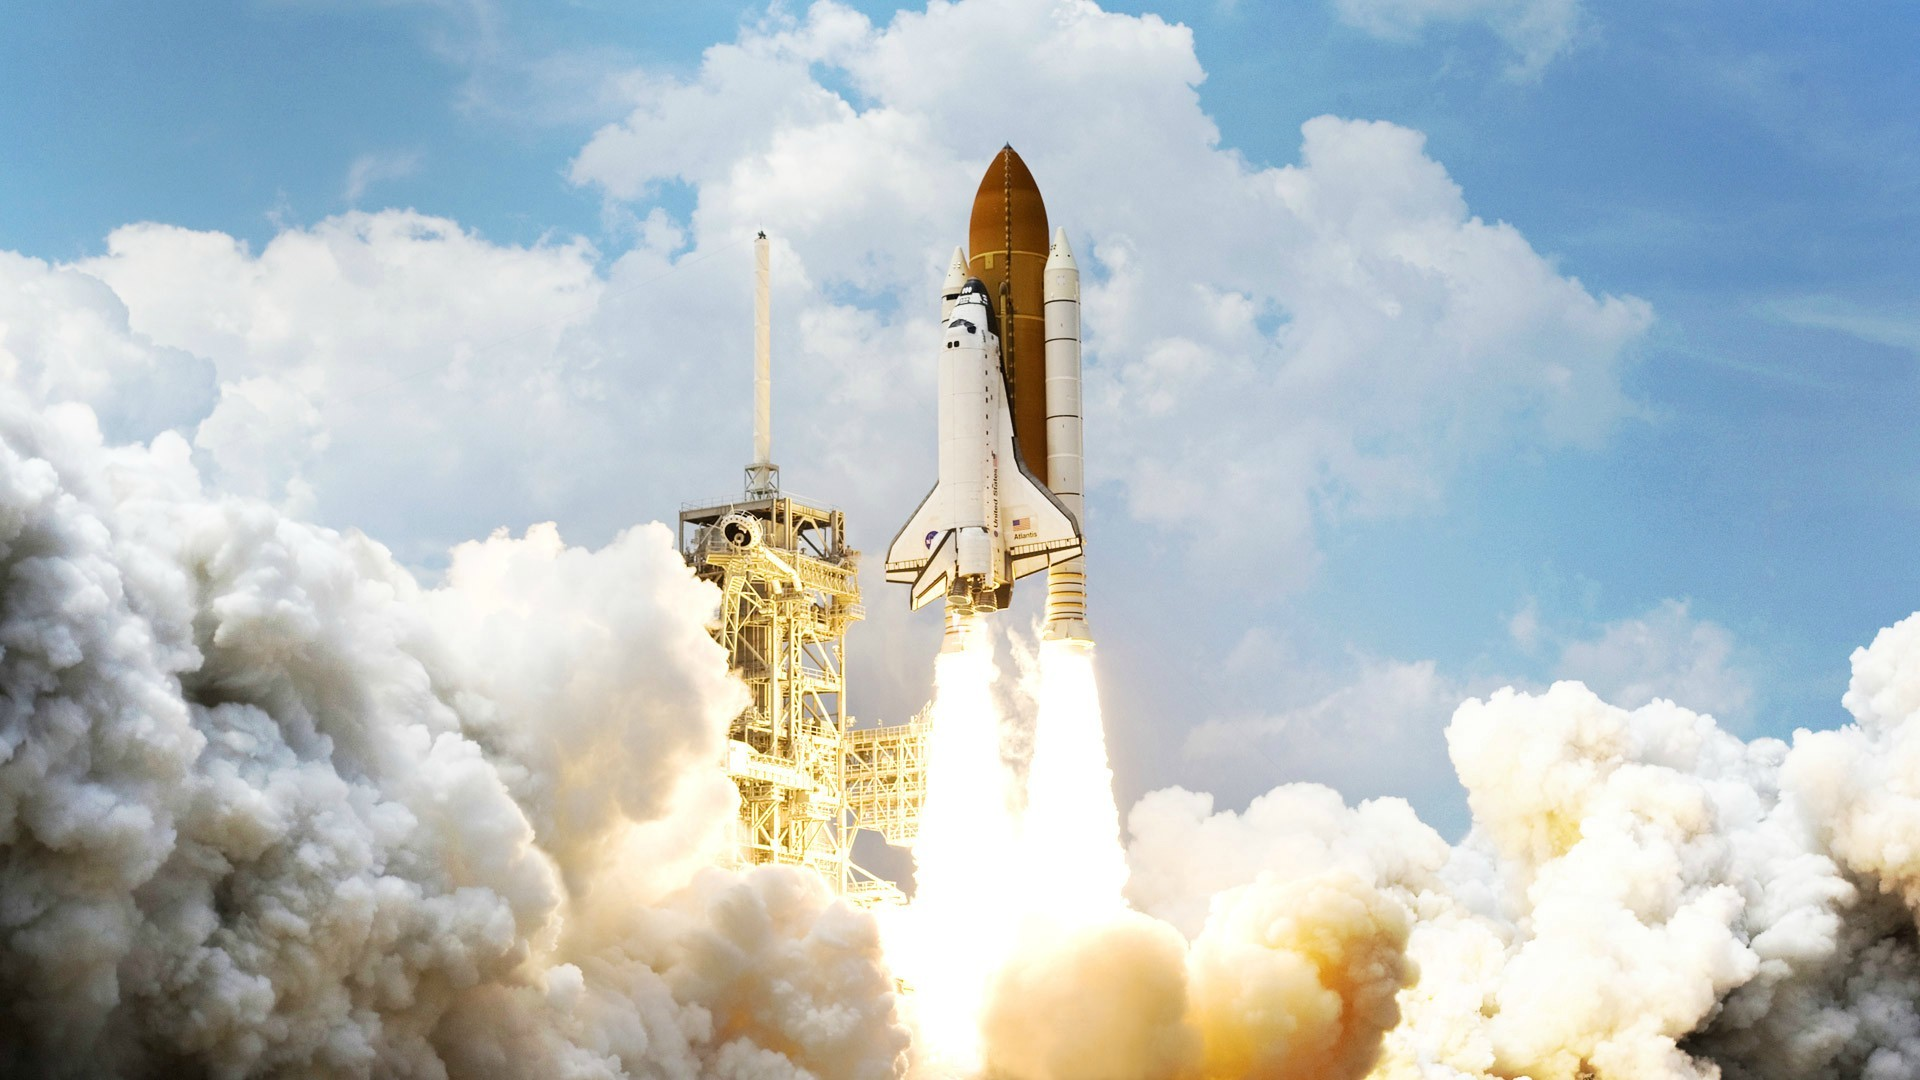 1920x1080 Space Shuttle HD Wallpaper - WallpaperSafari Beautiful Space Shuttle Launch  HD desktop wallpaper : High .